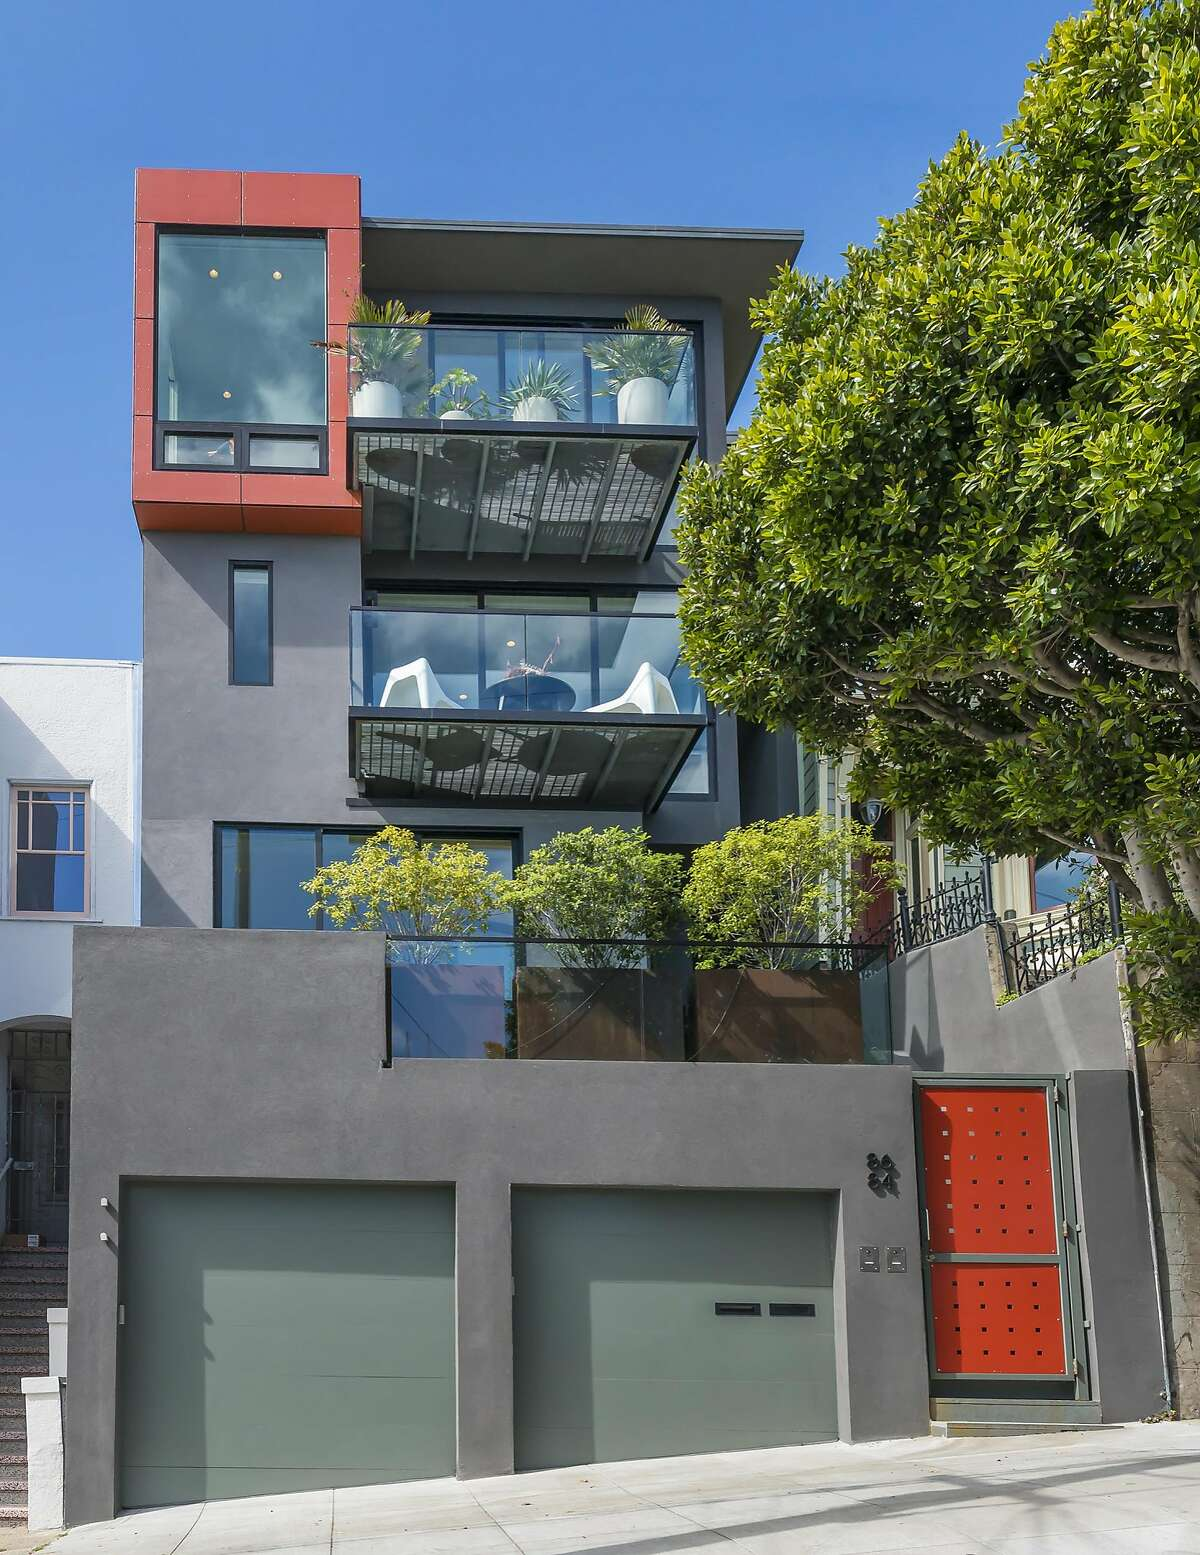 86 Ord St. in Corona Heights is a five bedroom, four bathroom available for $4.795 million.